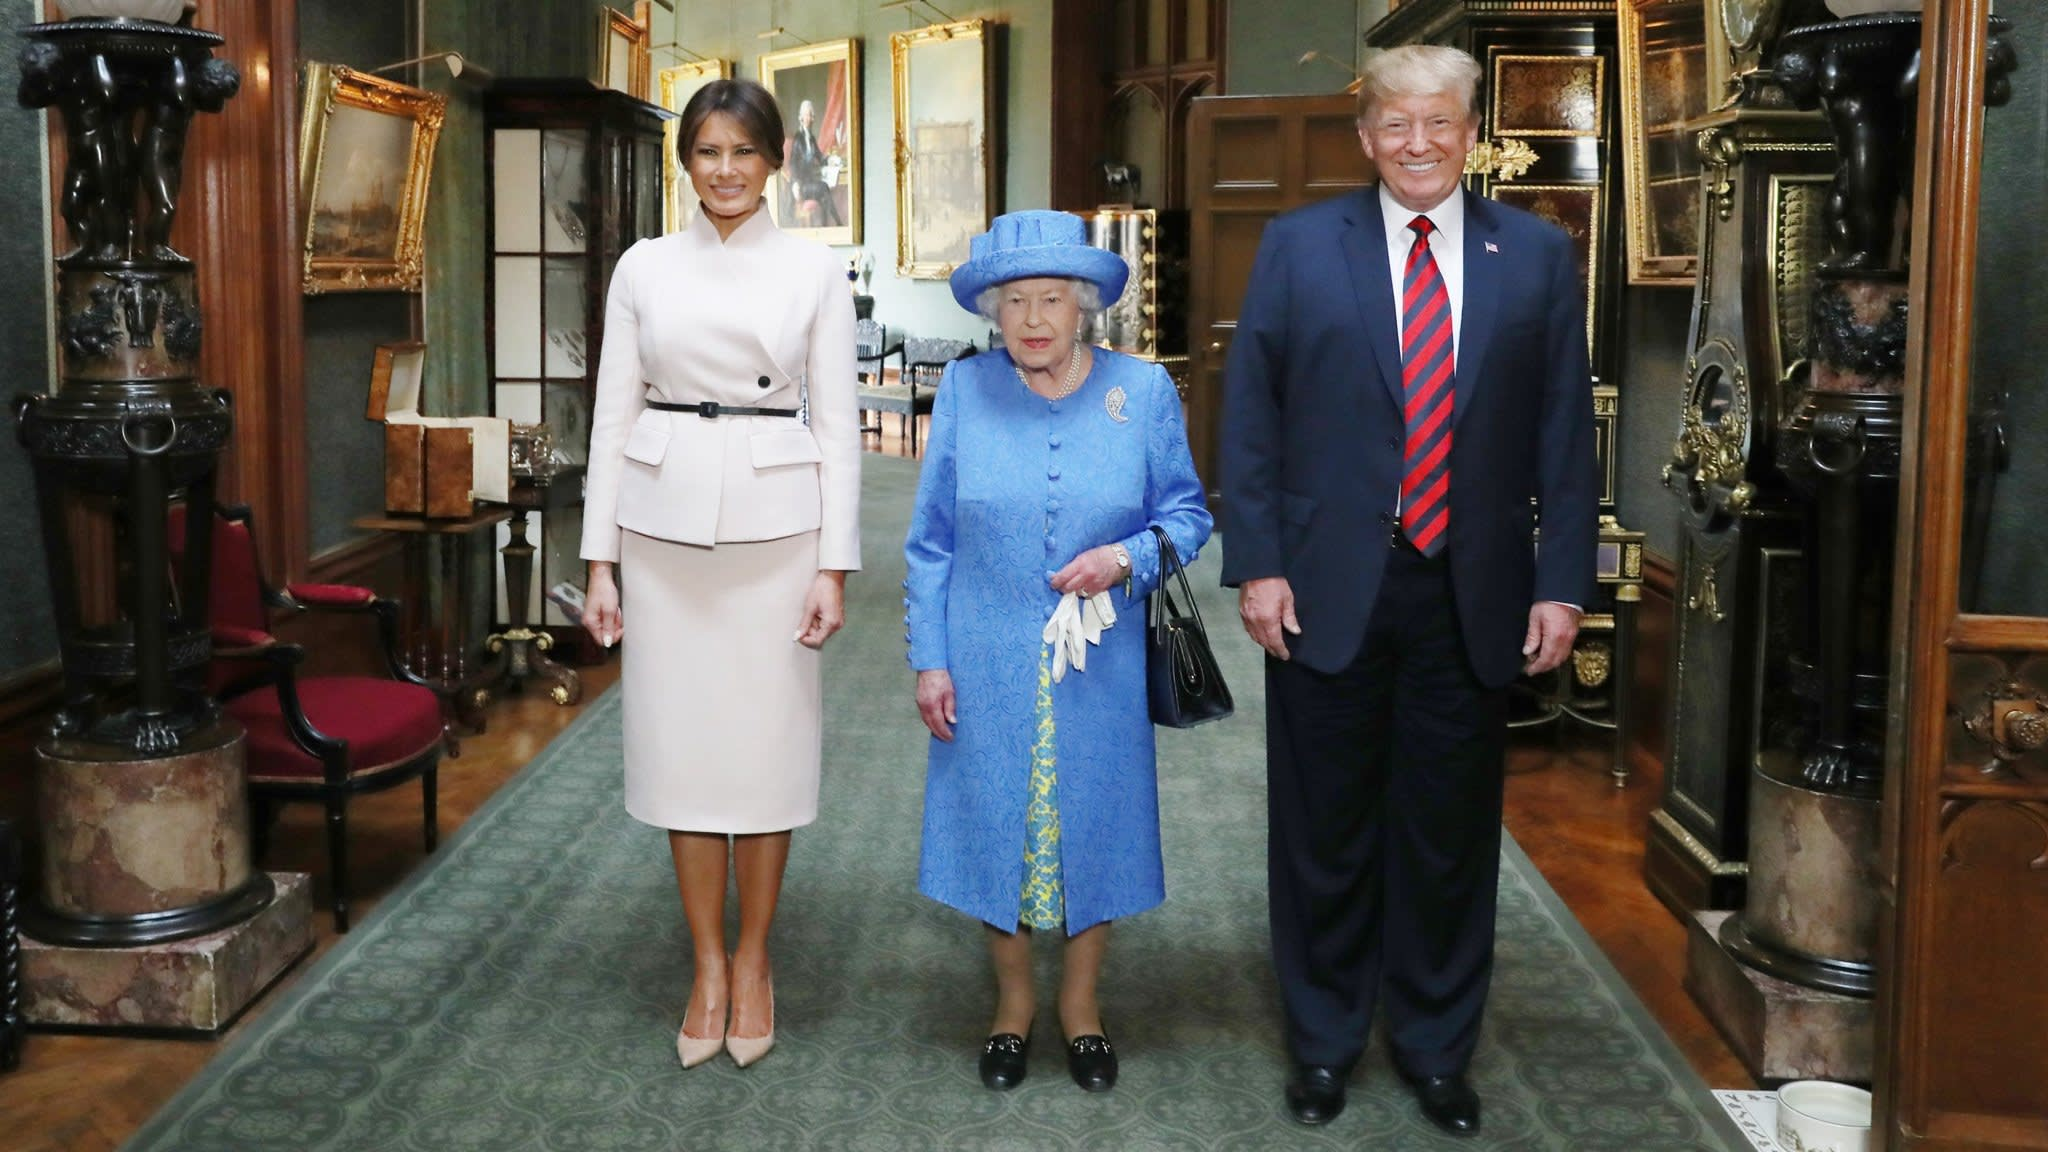 Donald Trump to pay first state visit to Britain in June | Financial Times